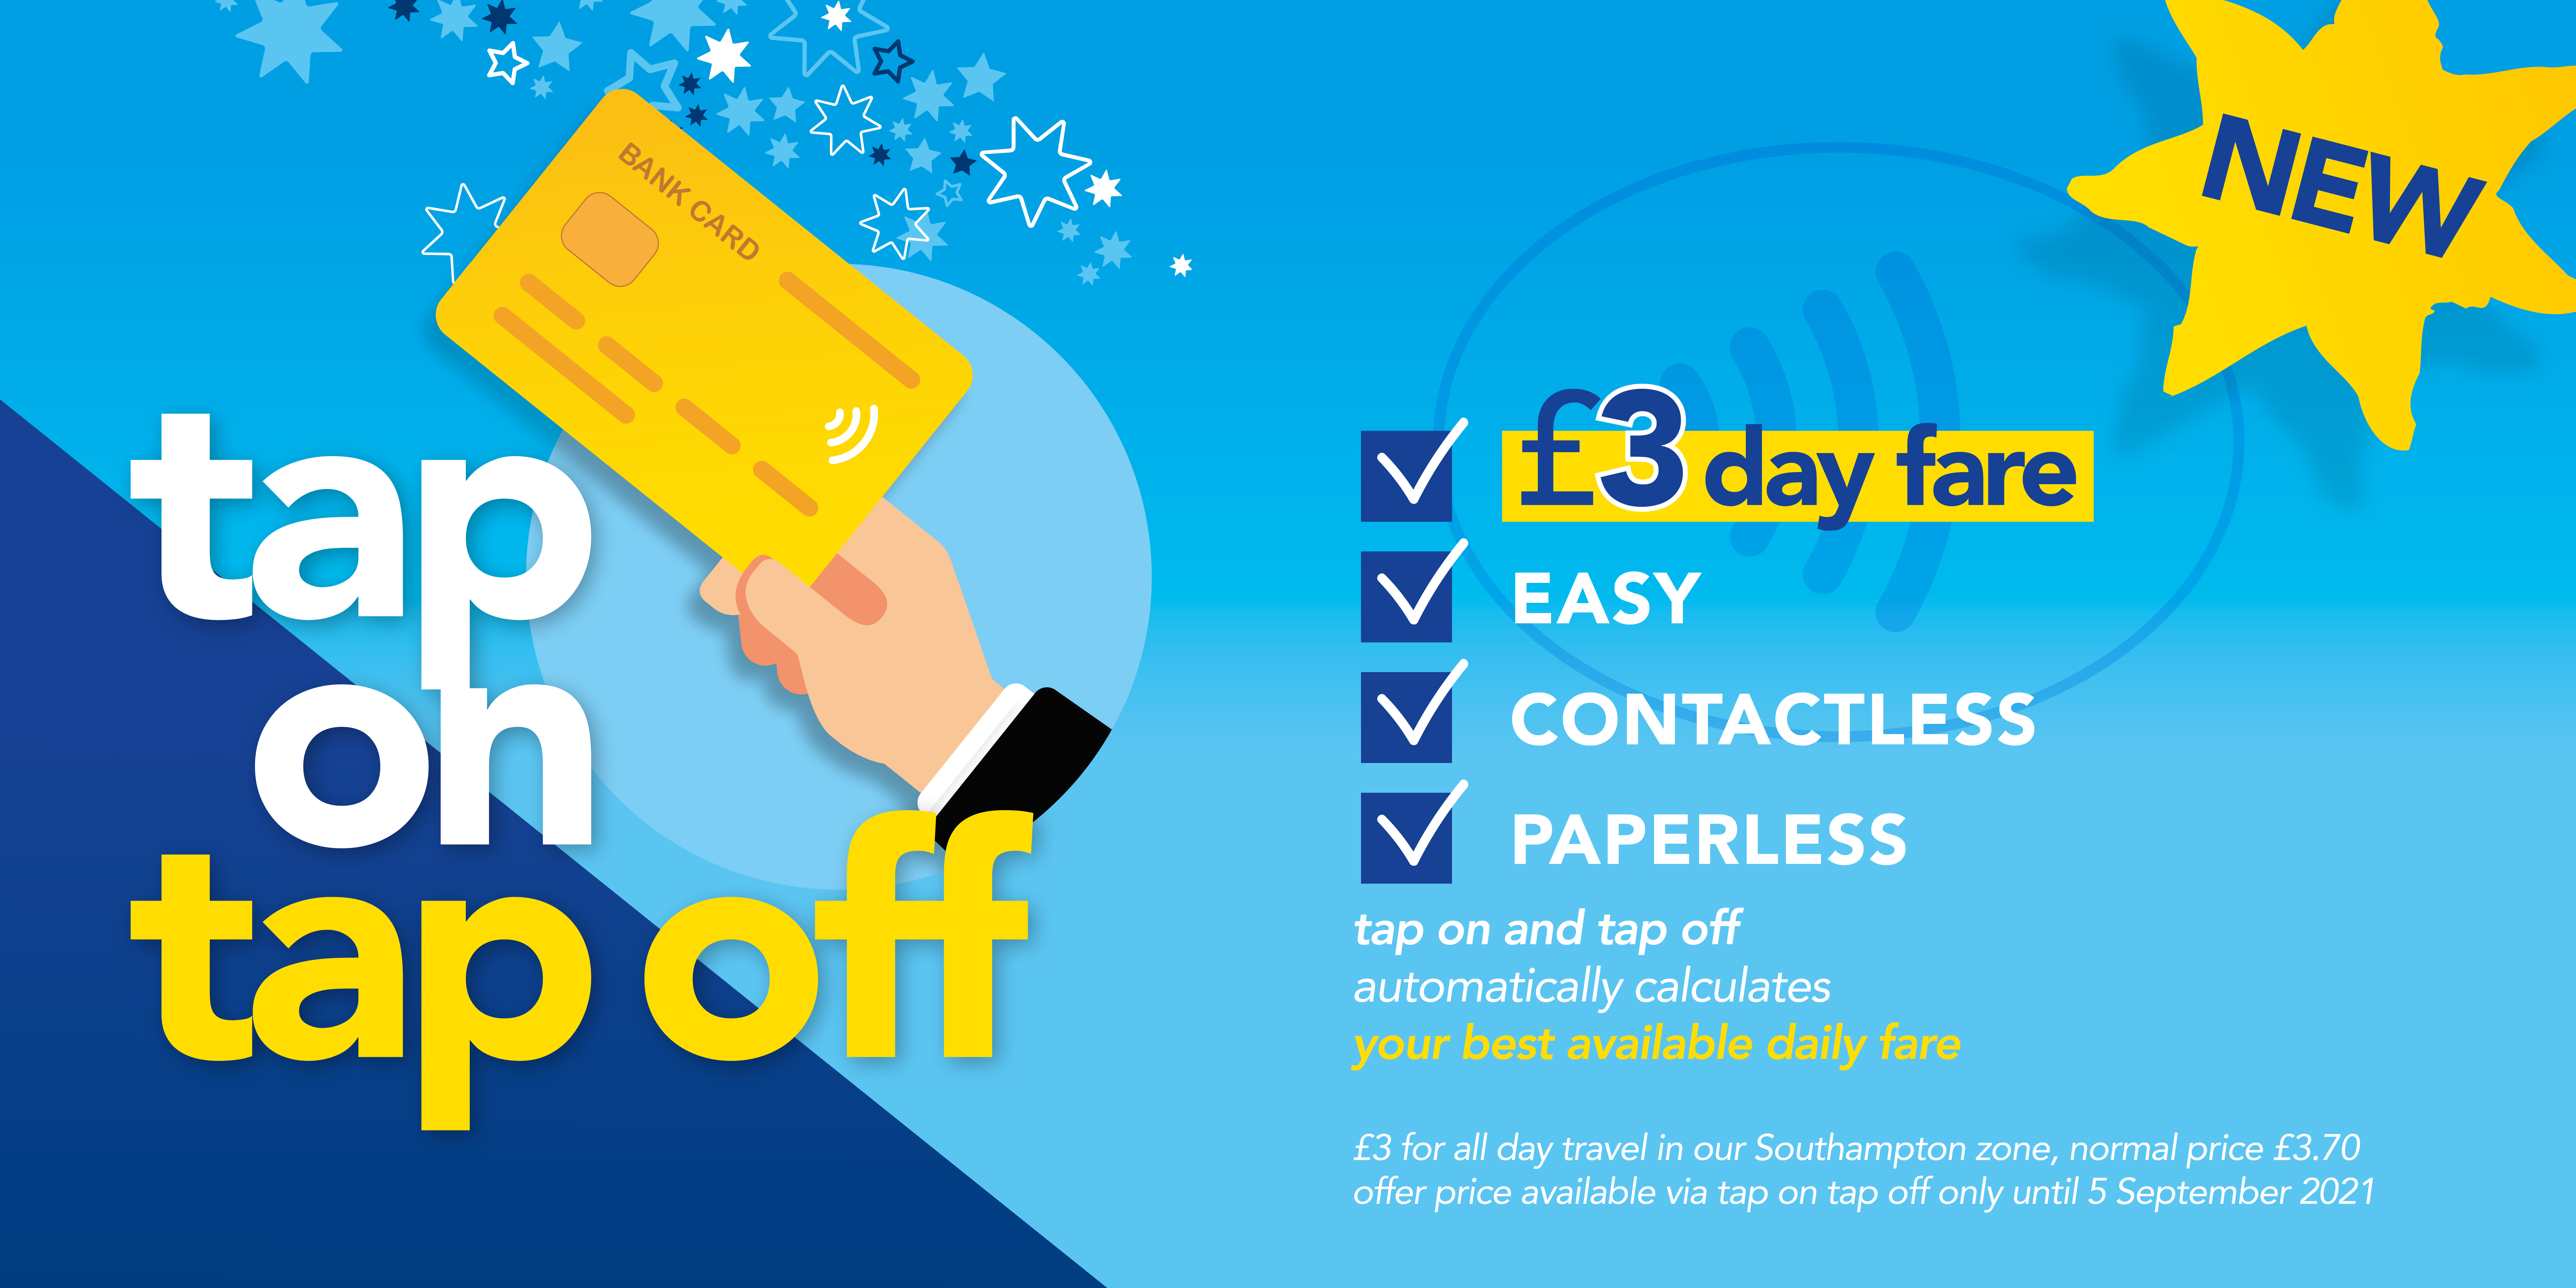 a promotional poster for tap on tap off with the £3 day fare offer